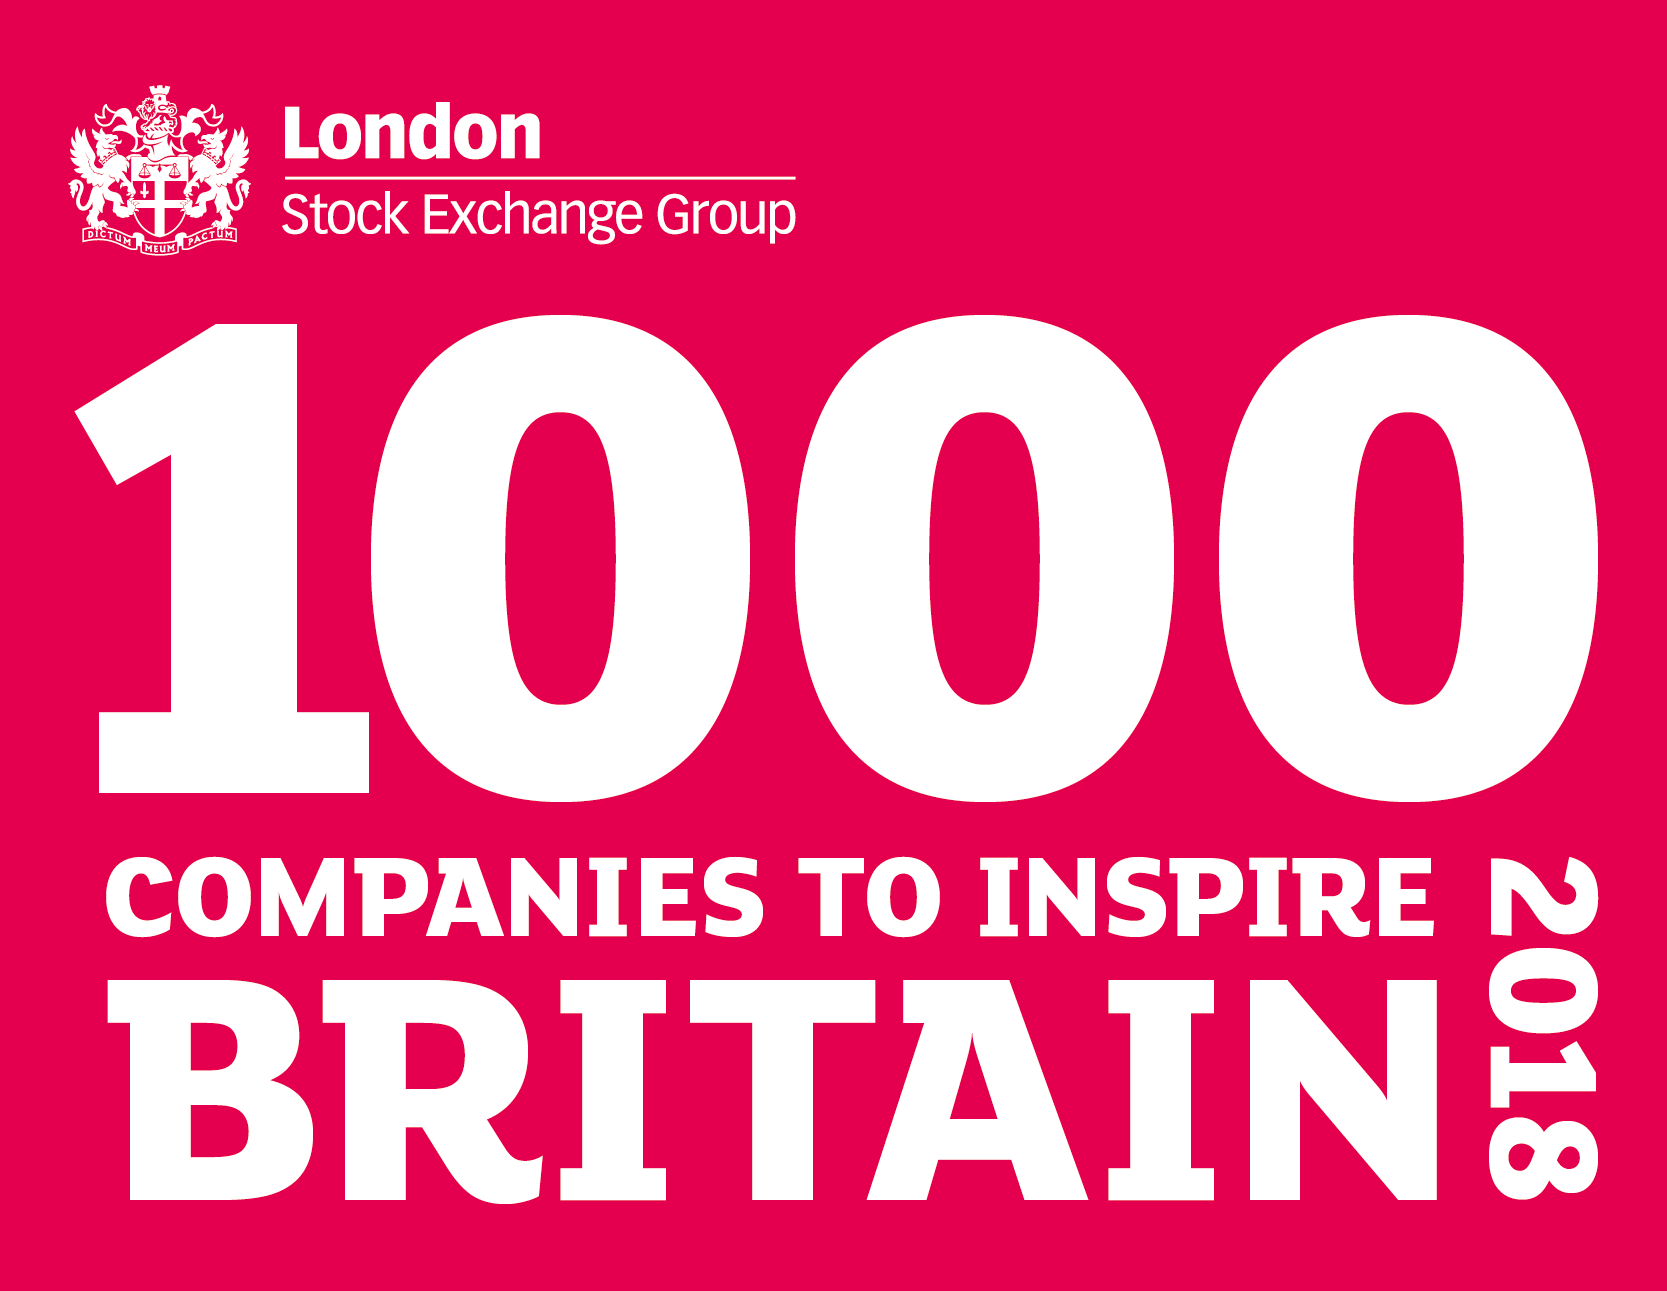 Roman featured in 1000 Companies to Inspire Britain